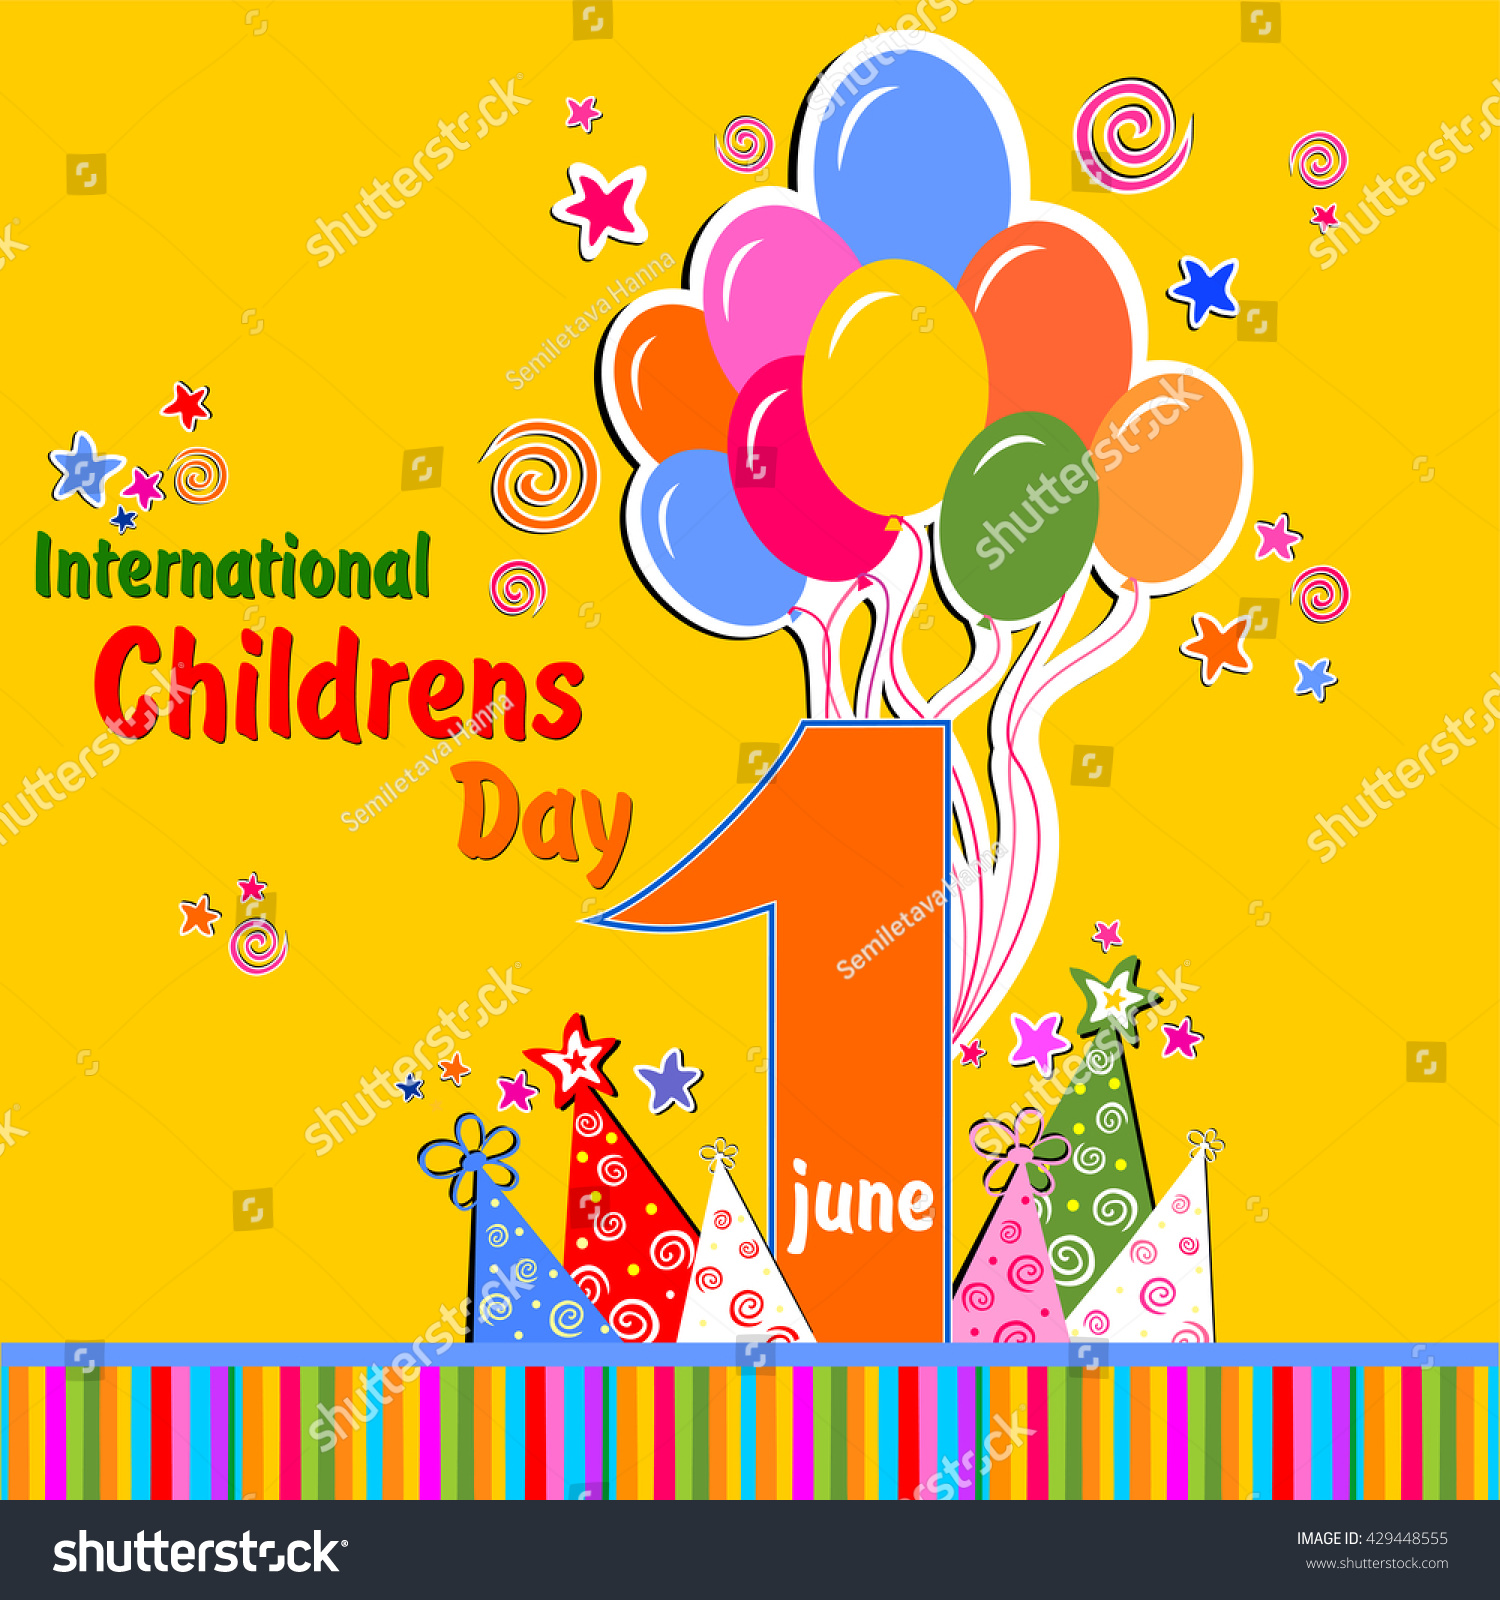 1 June International Childrens Day Background Stock Vector ...